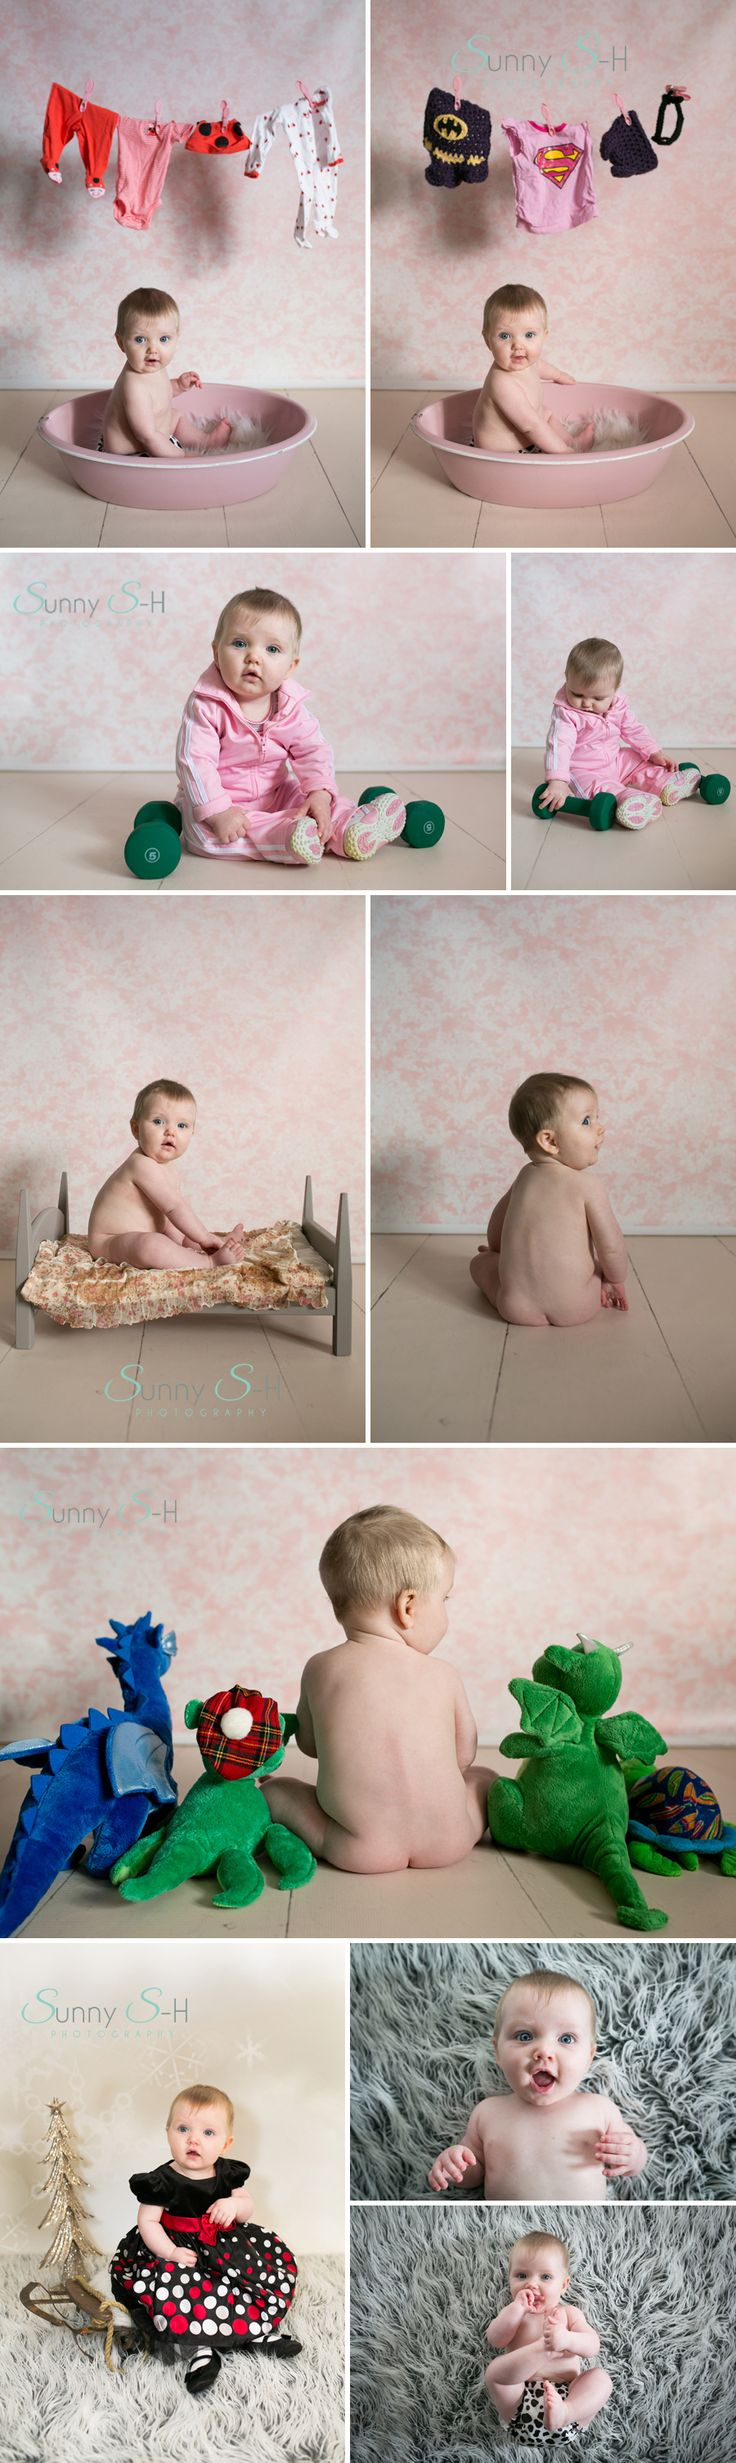 6 month baby stage photo shoot - Winnipeg Baby Photography www.sunnys-hphotography.com